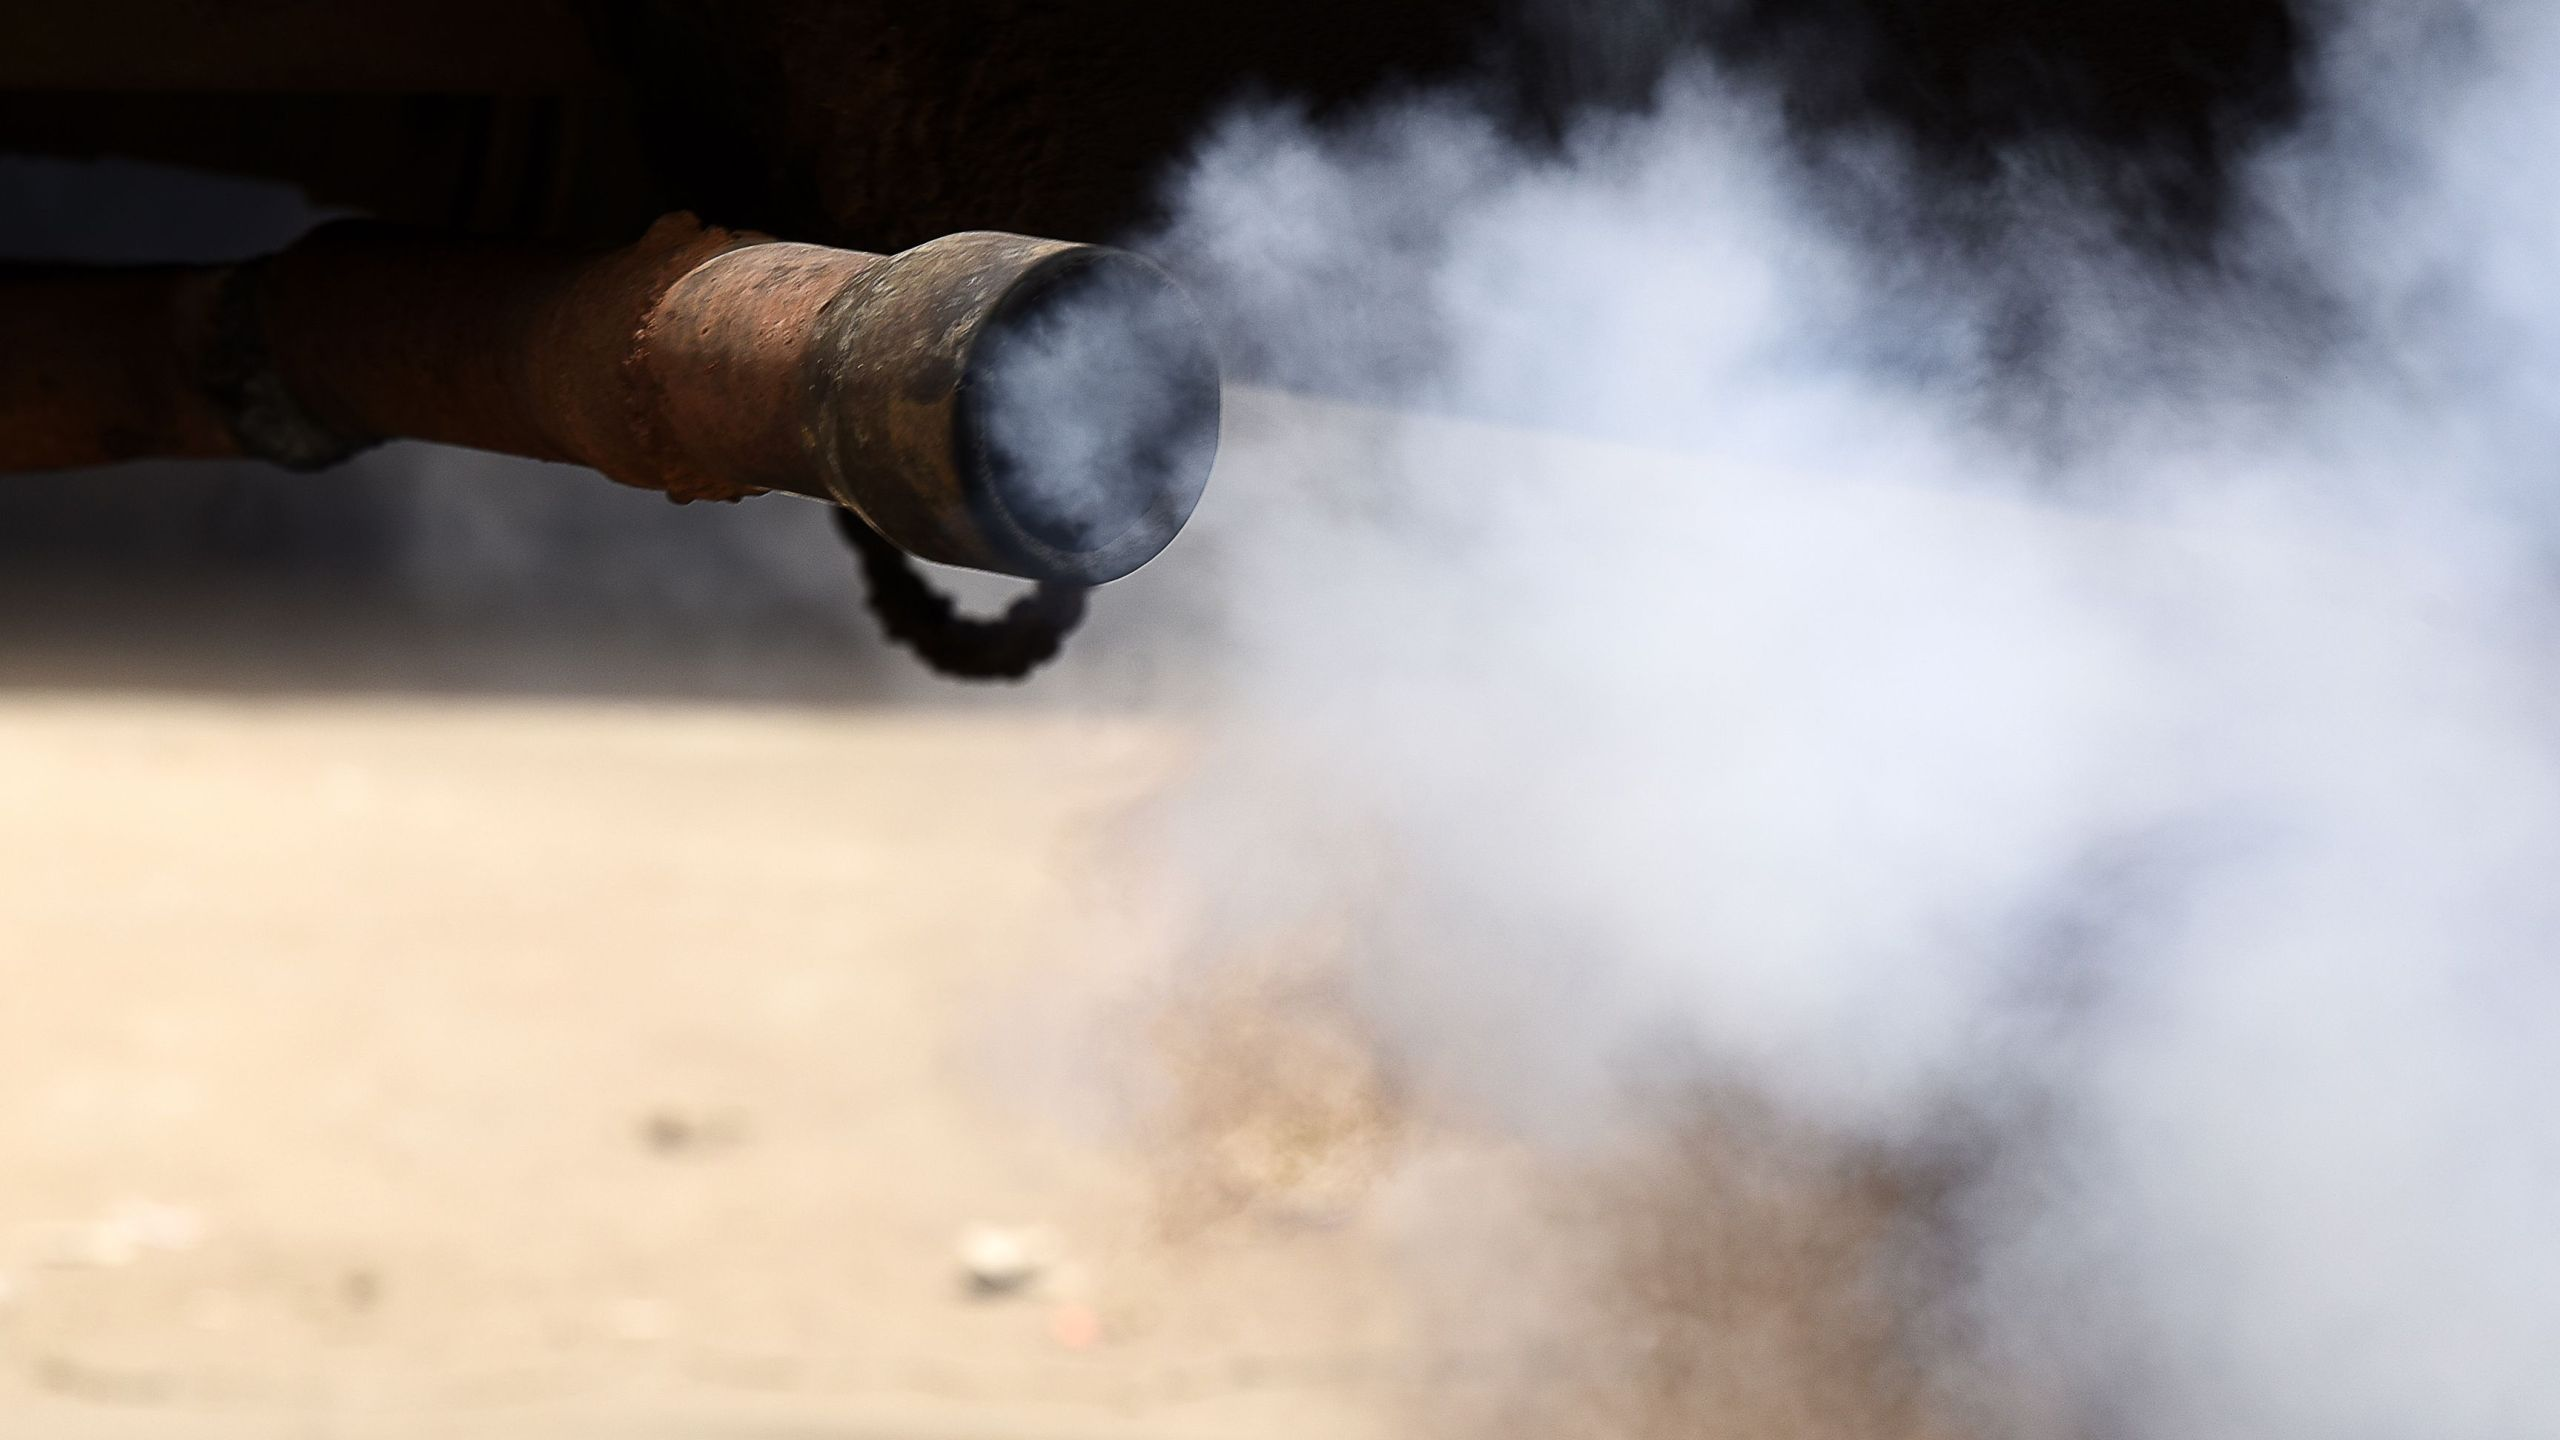 Smoke comes out of a car's exhaust pipe on June 2, 2018, in Dakar. (Credit: Seyllou/AFP via Getty Images)